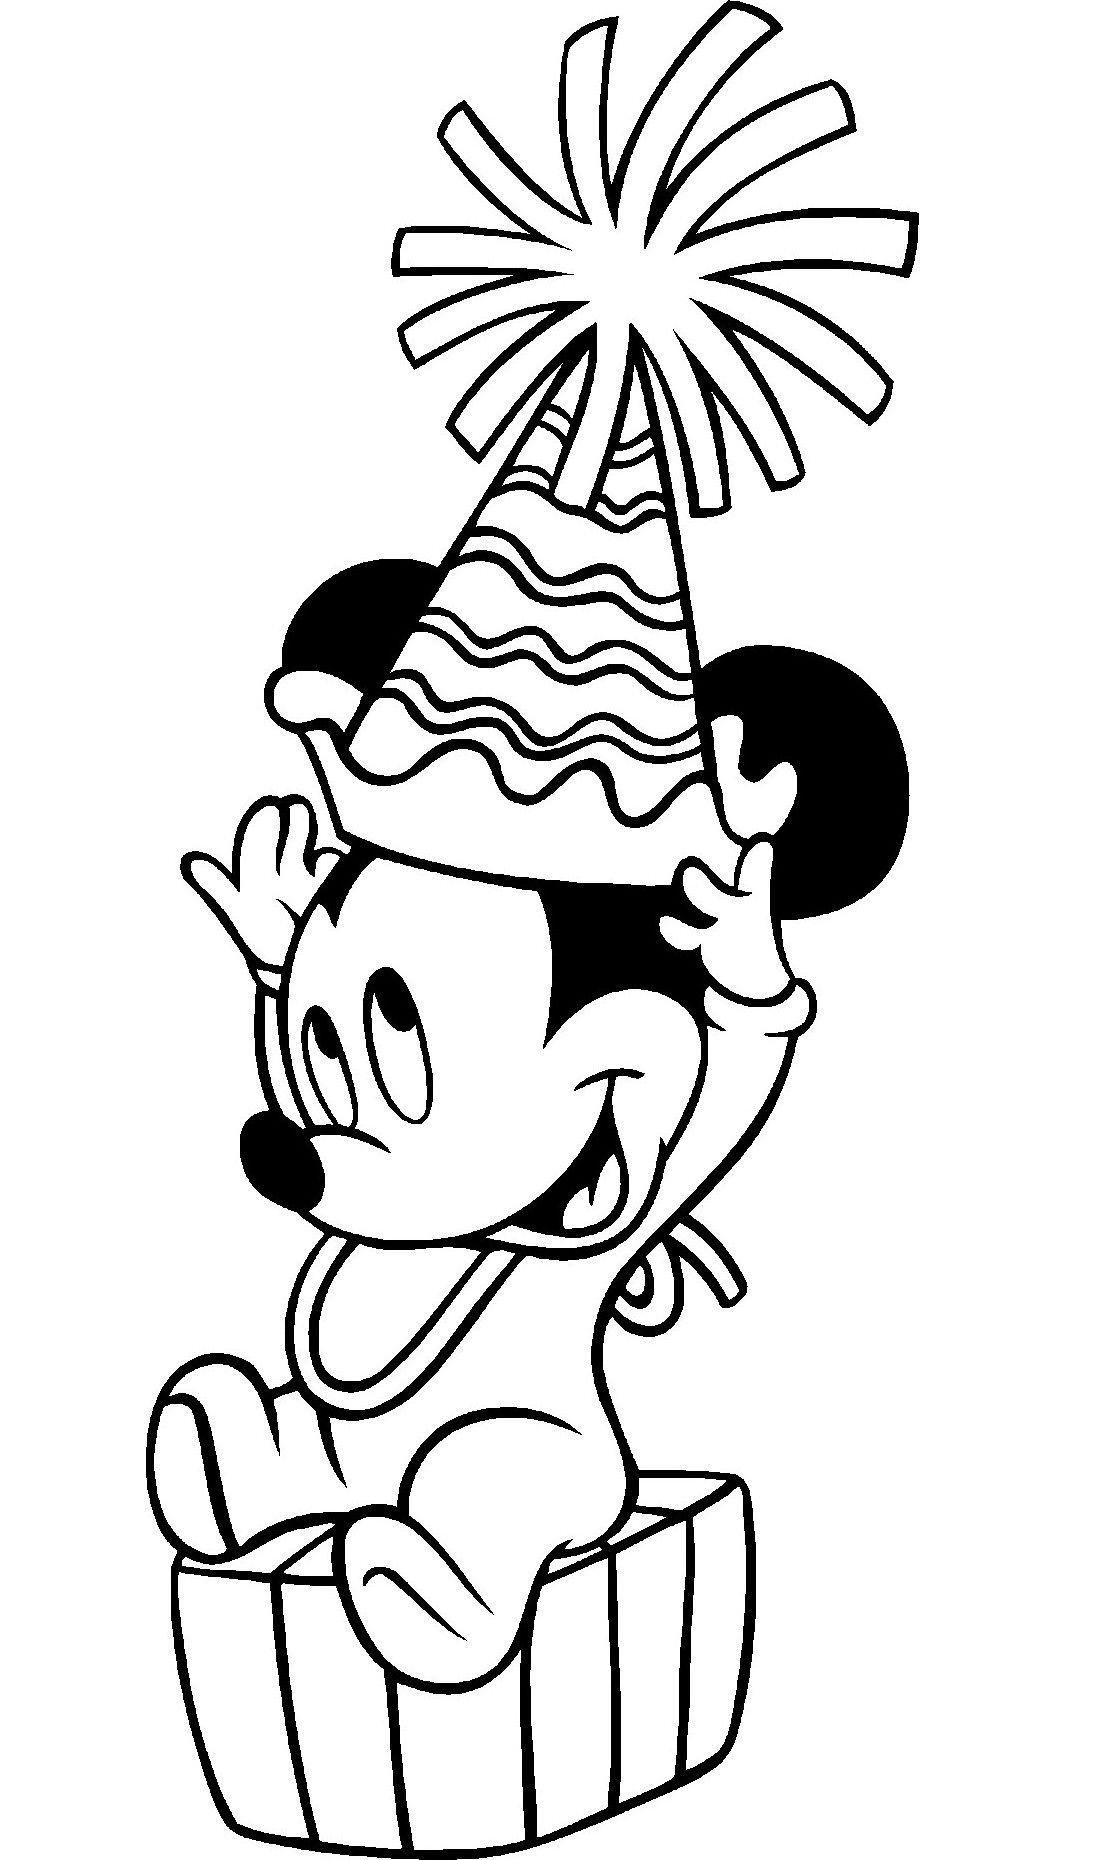 Free Printable Mickey Mouse Coloring Pages For Kids Mickey Mouse Coloring Pages Minnie Mouse Coloring Pages Disney Coloring Pages